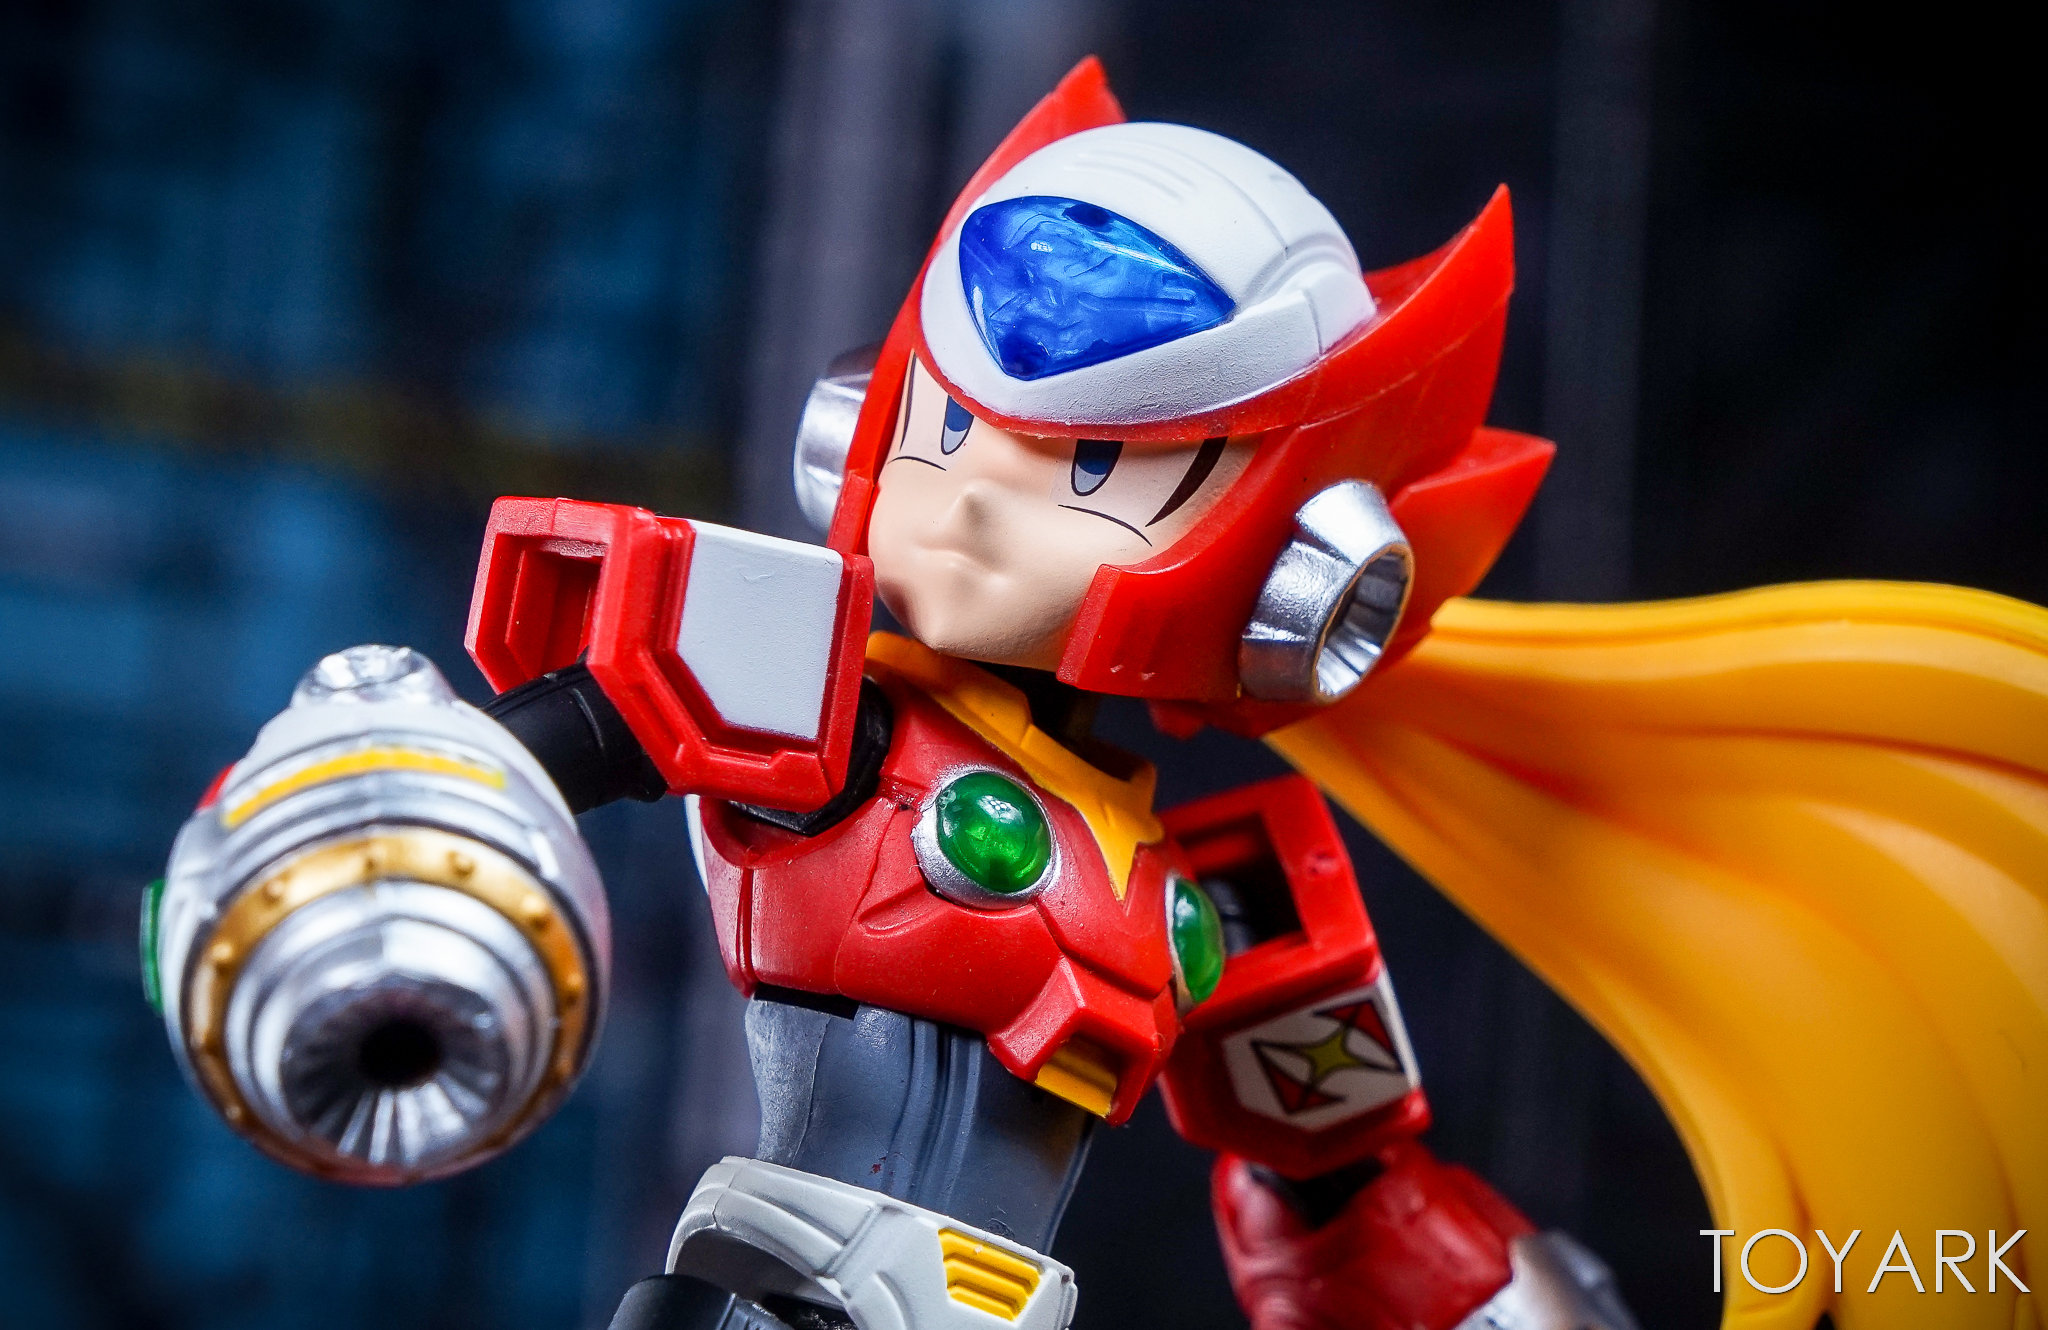 http://news.toyark.com/wp-content/uploads/sites/4/2017/11/Mega-Man-X-NX-Edge-Style-031.jpg